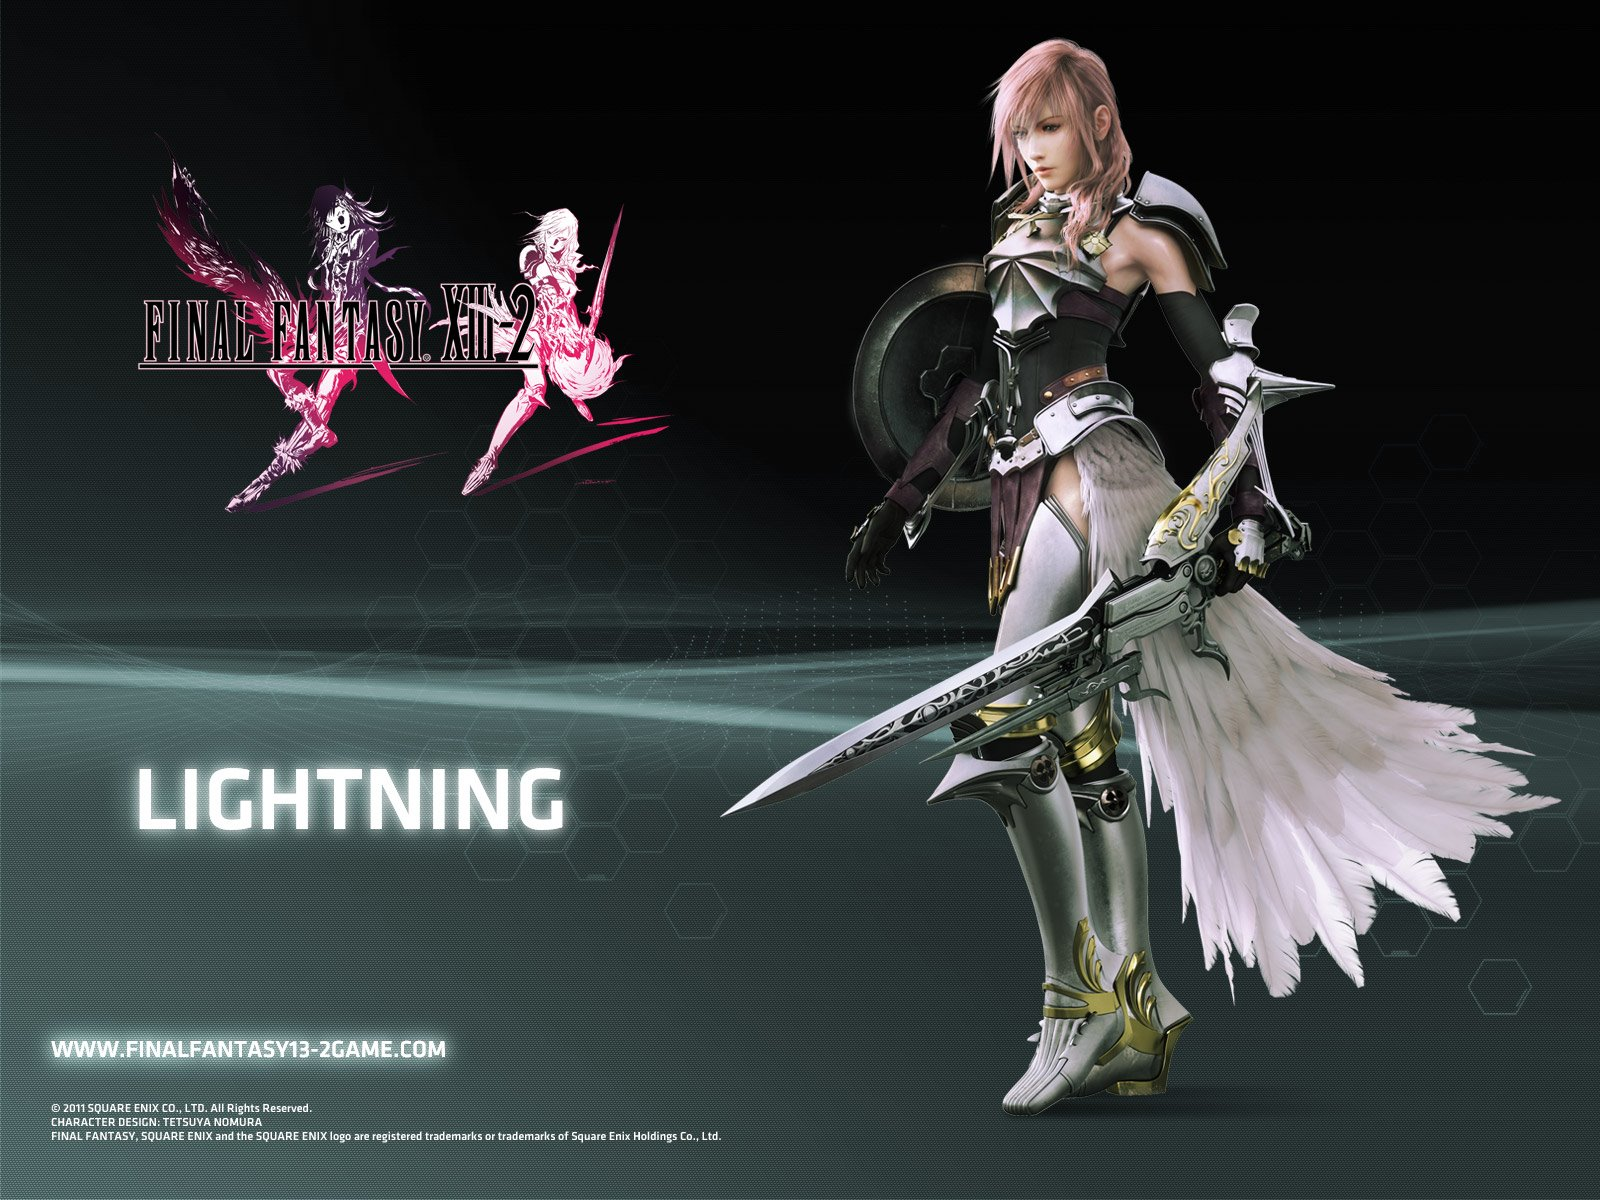 Download 9 Awesome Final Fantasy Xiii 2 Wallpapers Just Push Start